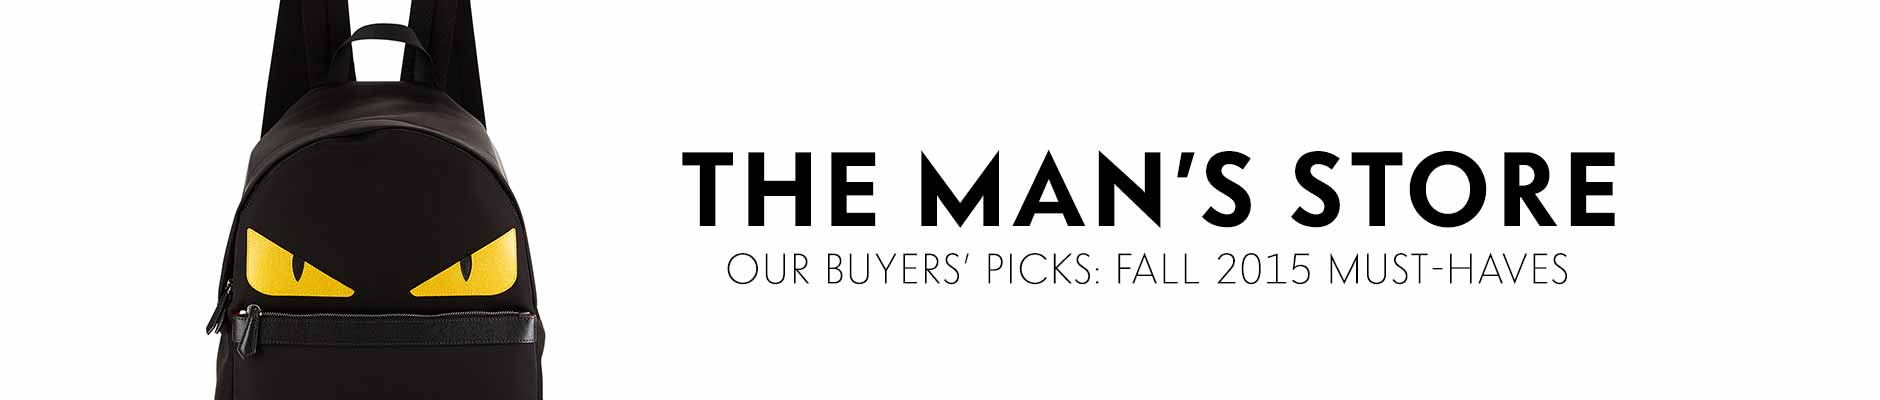 Men's Buyer's Picks